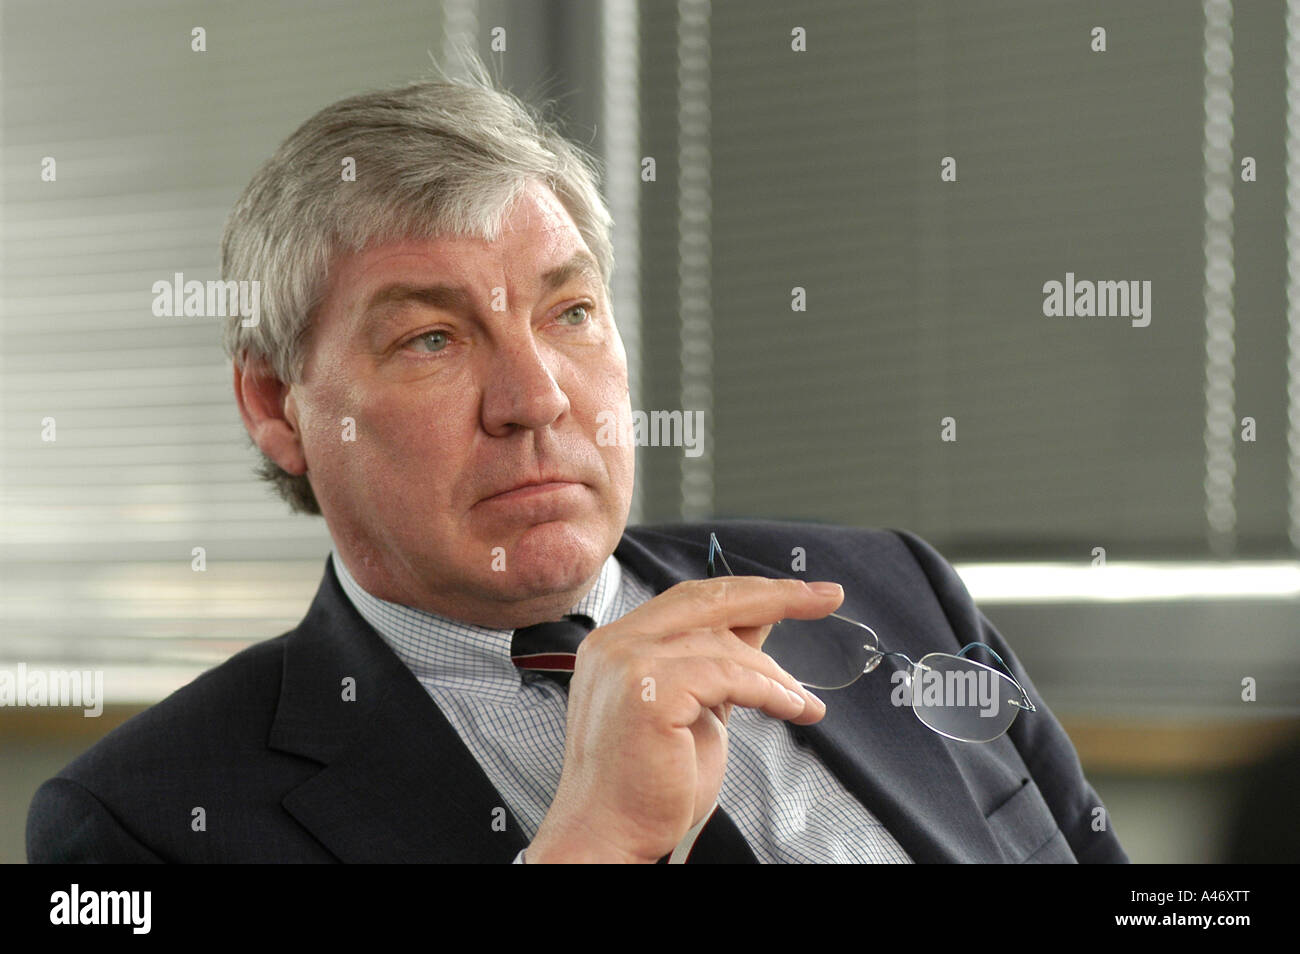 Michael Sommer, Chairman of the German Federation of Trade Unions DGB - Stock Image